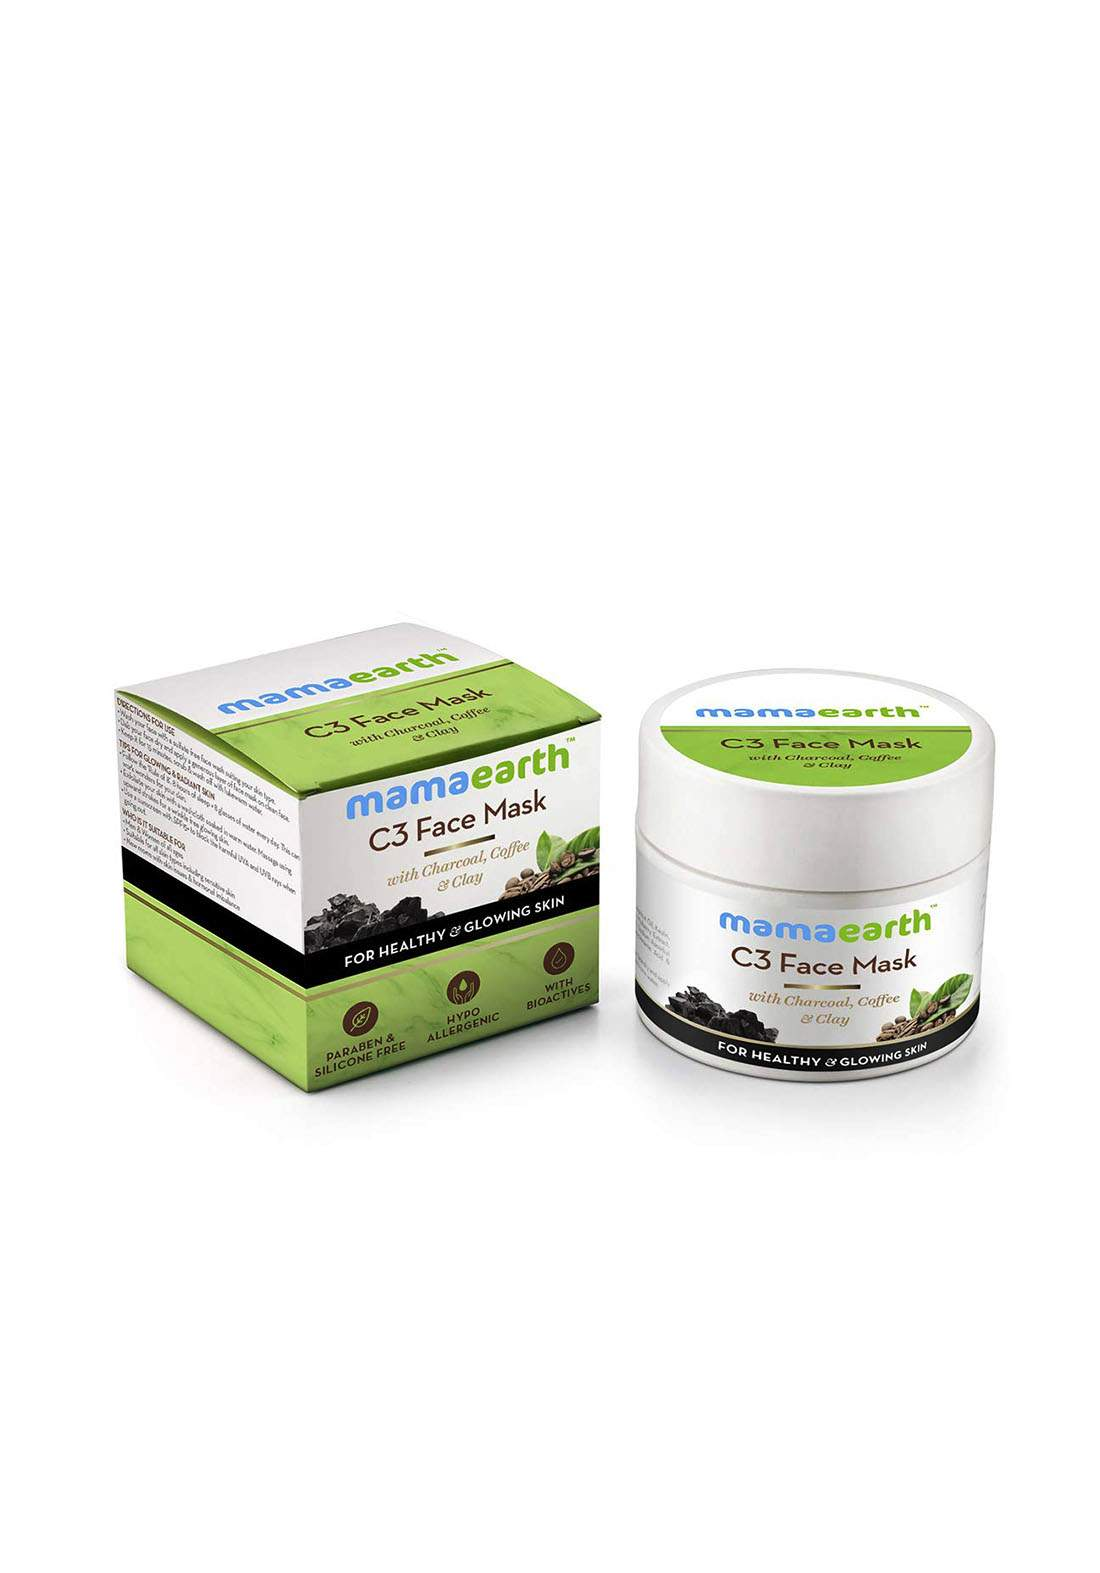 Mamaearth C3 Face Mask For Healthy And Glowing Skin 100ml قناع للوجه